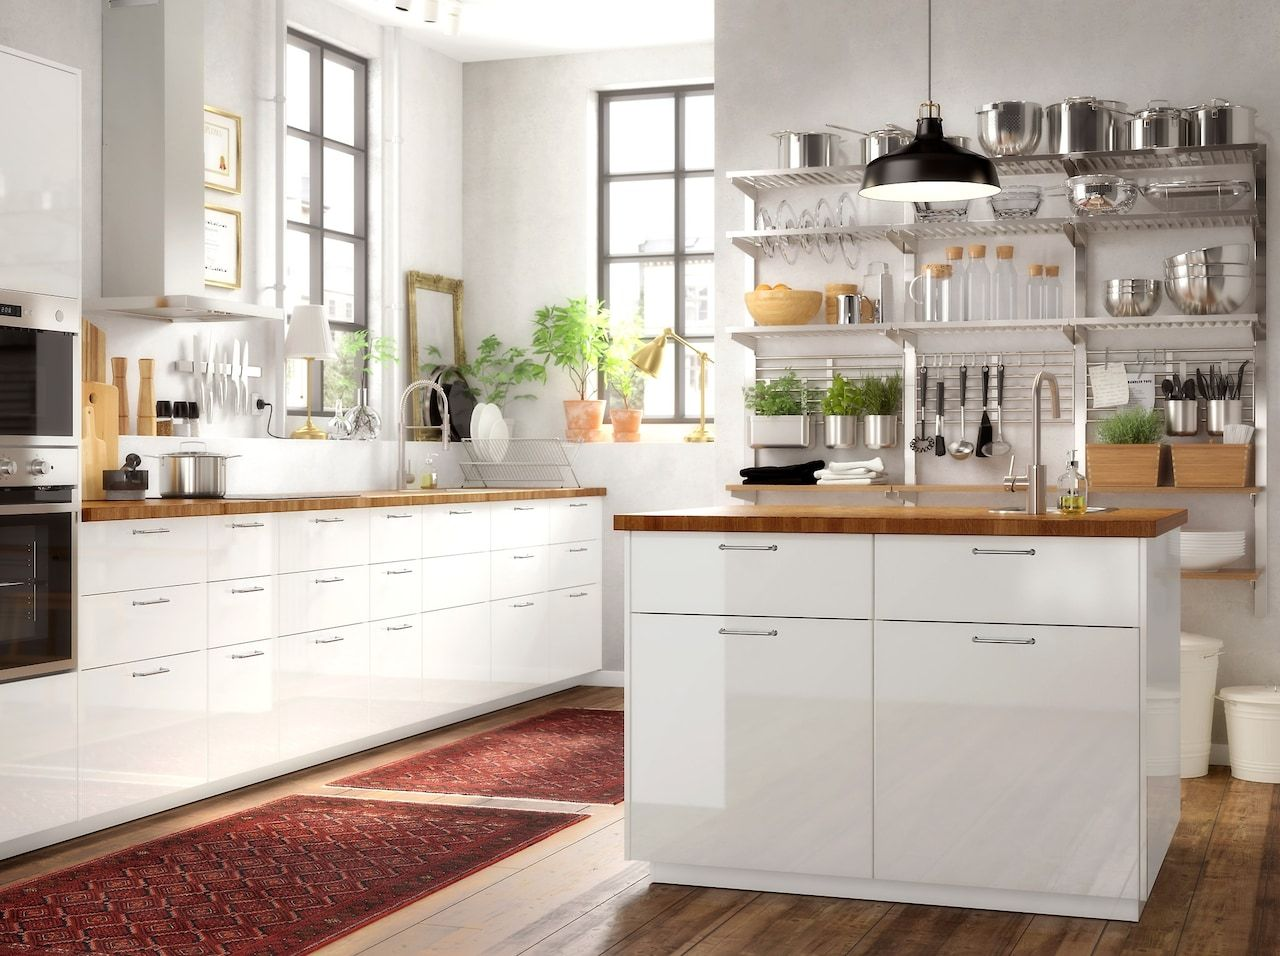 Quality And Style Recipe For Success In Your Kitchen Ikea Kitchen Inspiration Ikea Small Kitchen Kitchen Interior